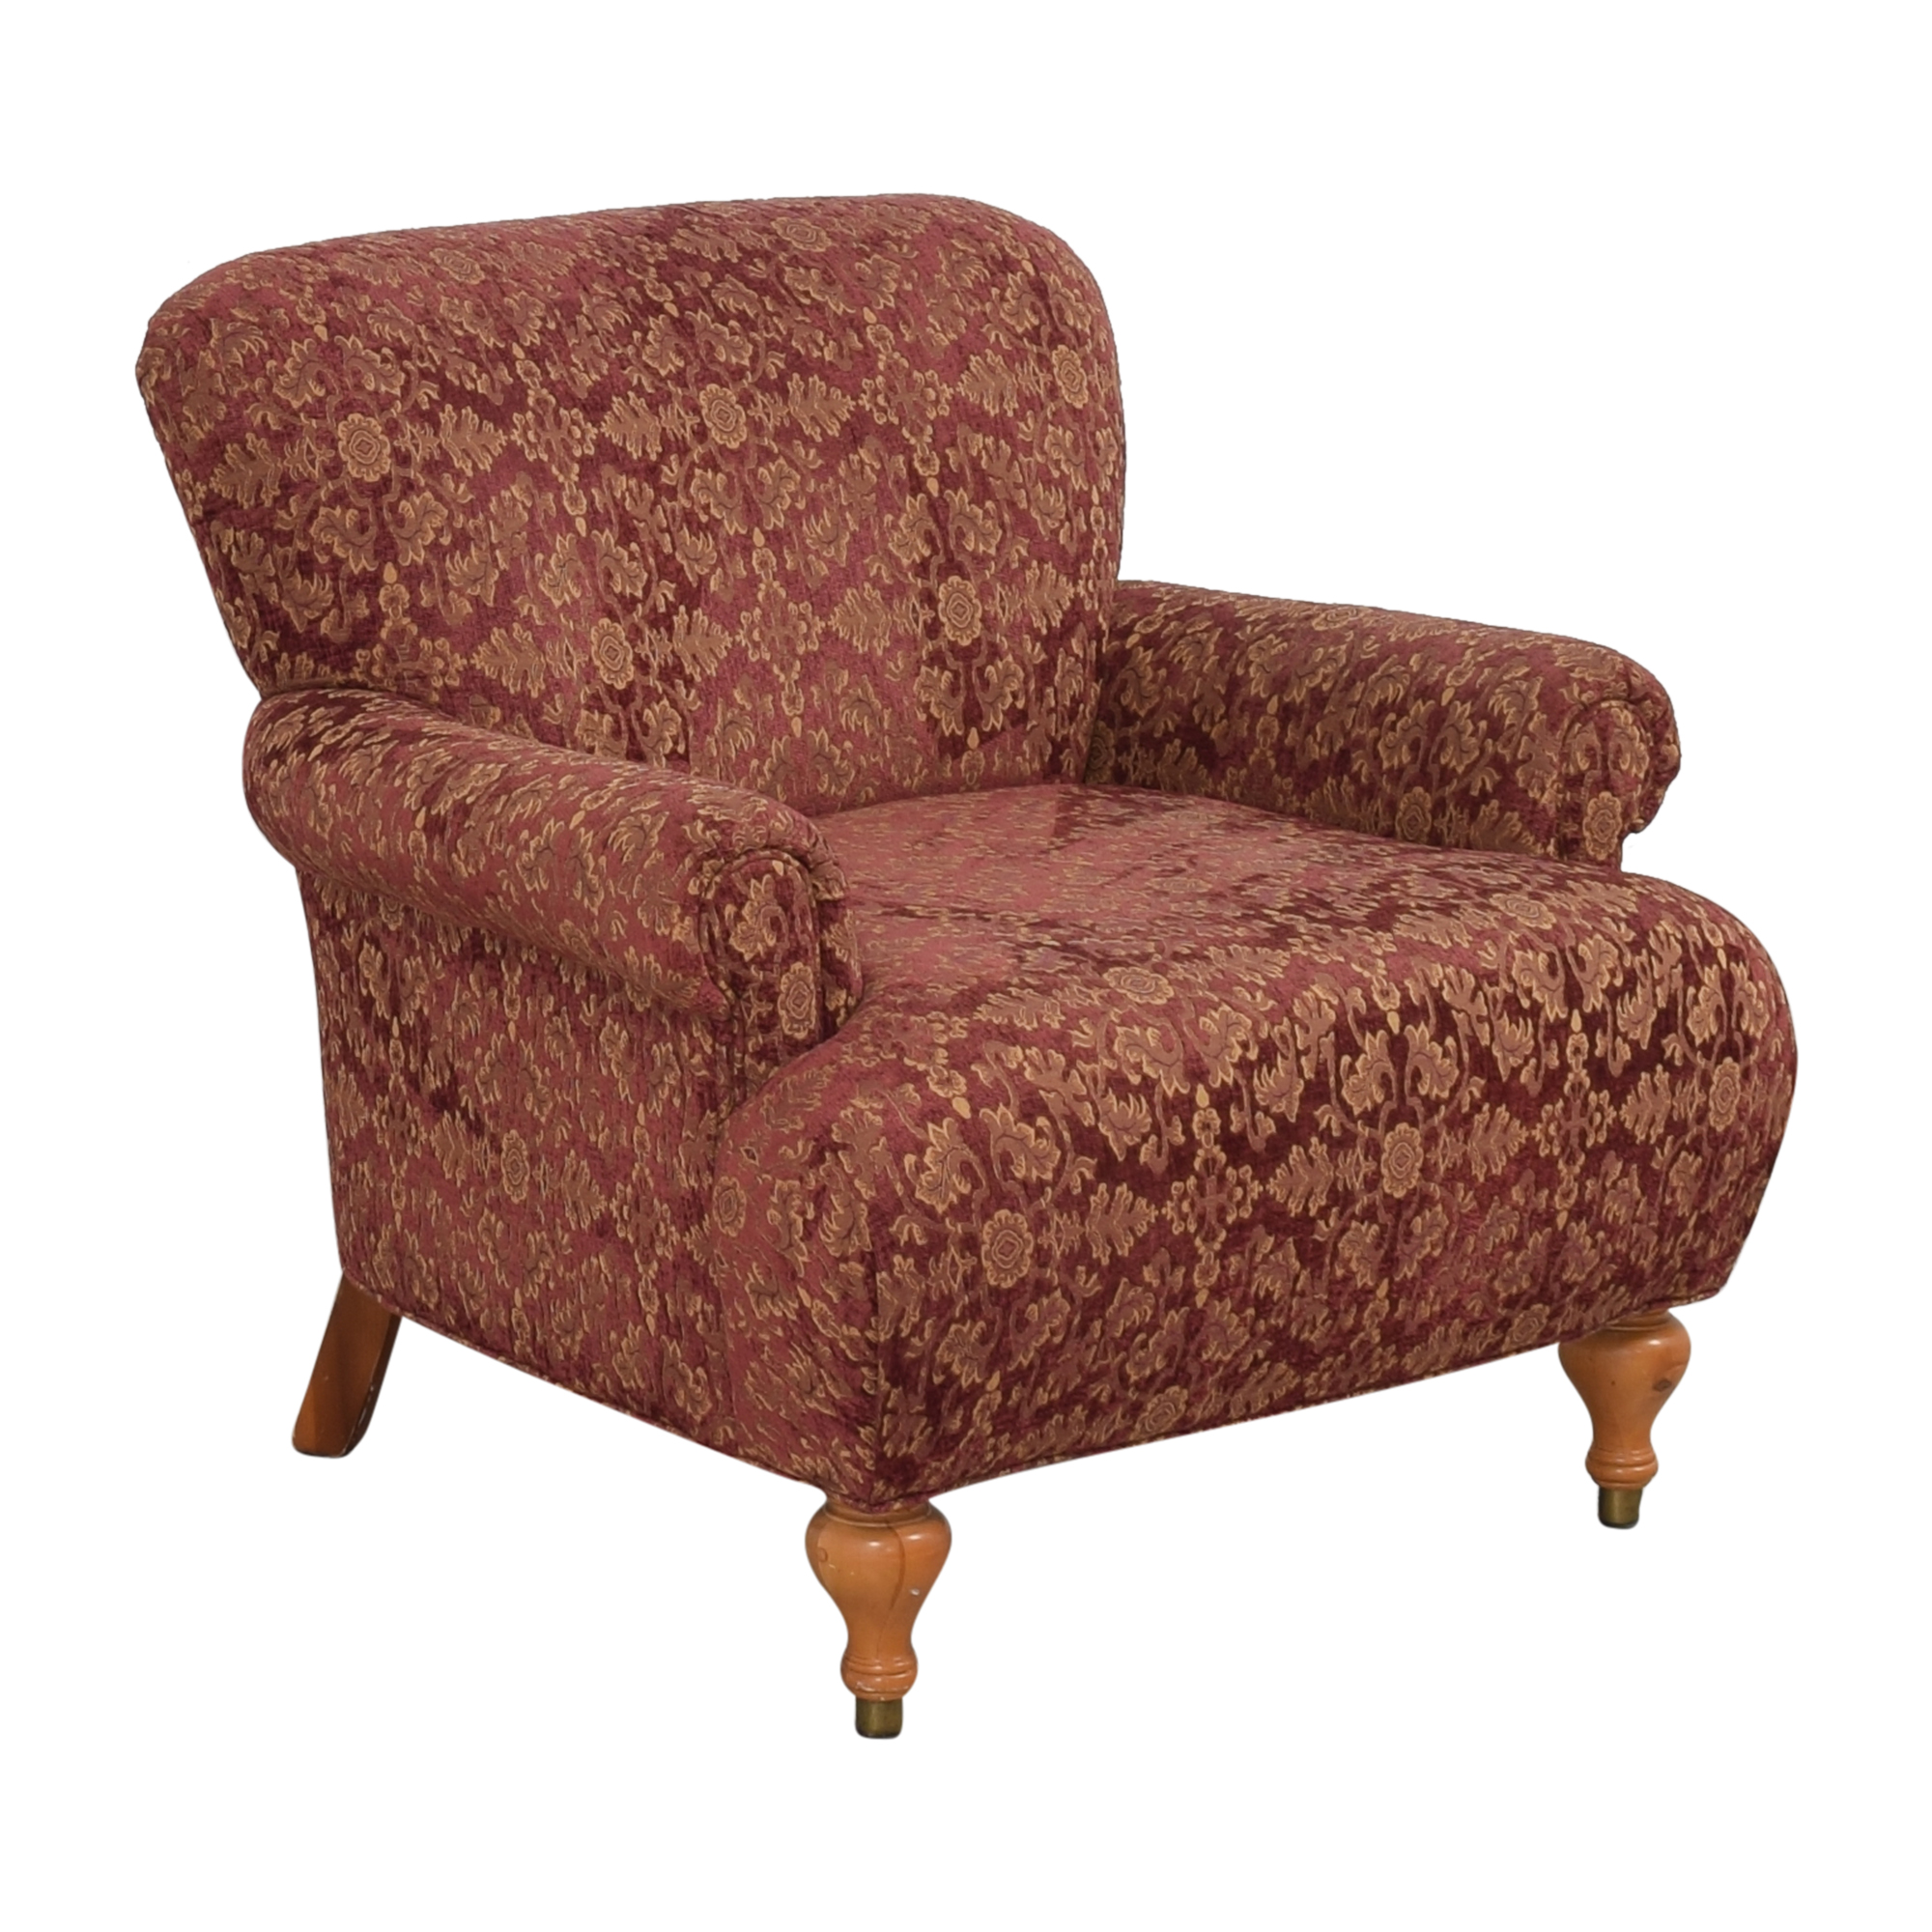 Roll Arm Accent Chair red & gold